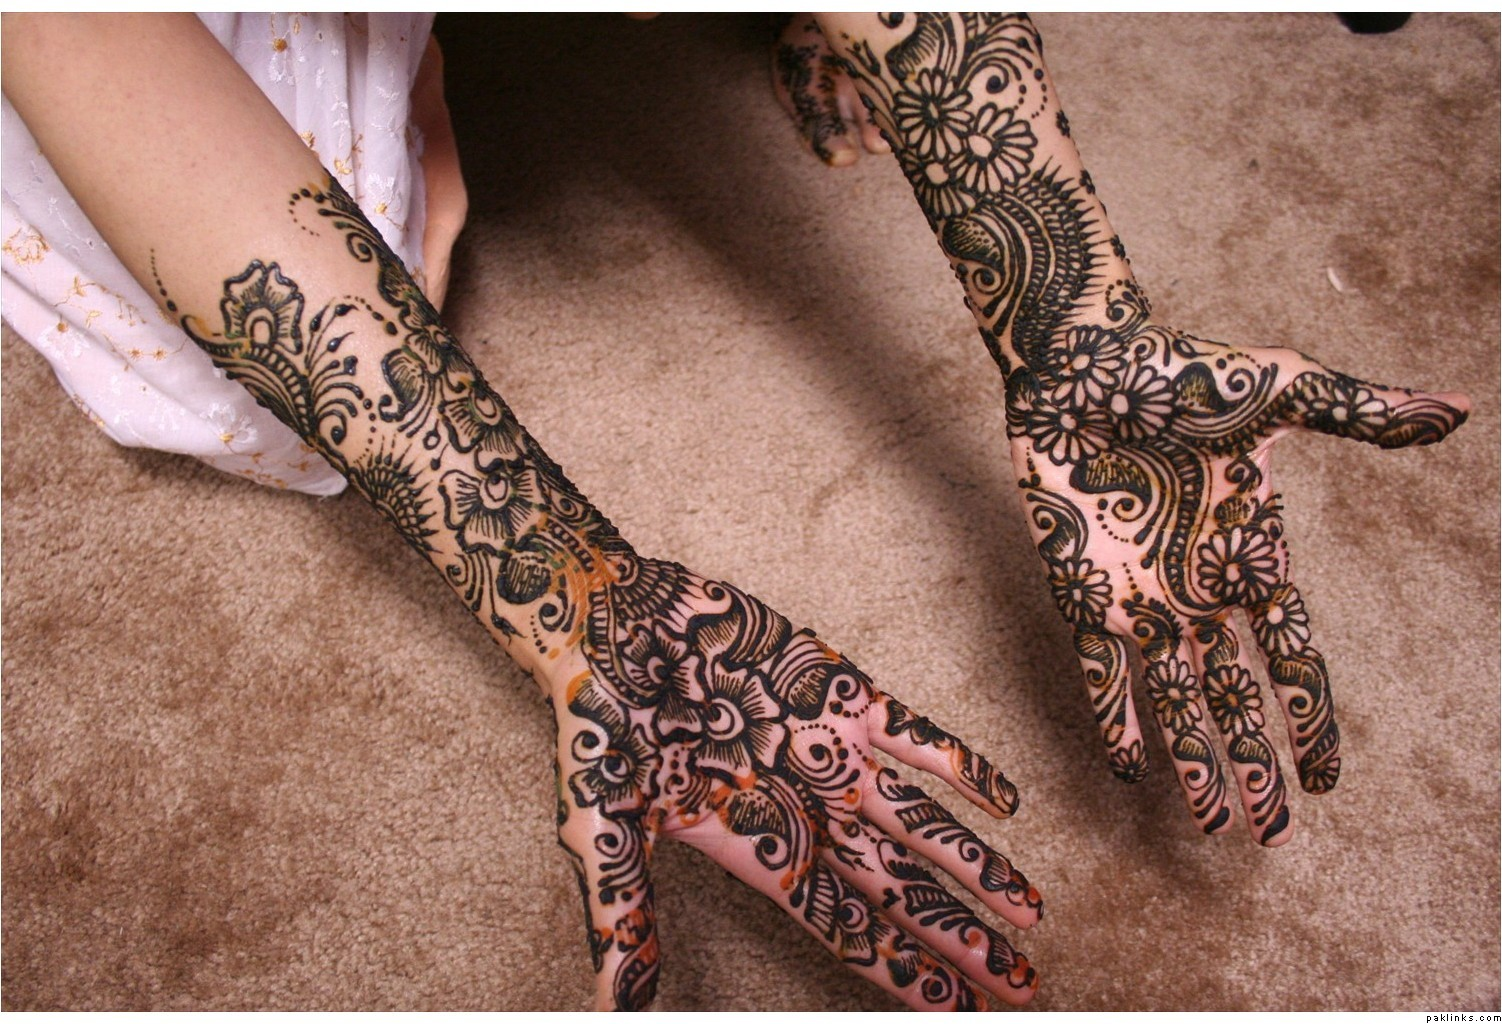 Mehndi Patterns What Are They : Indian mehndi designs for full hands desings